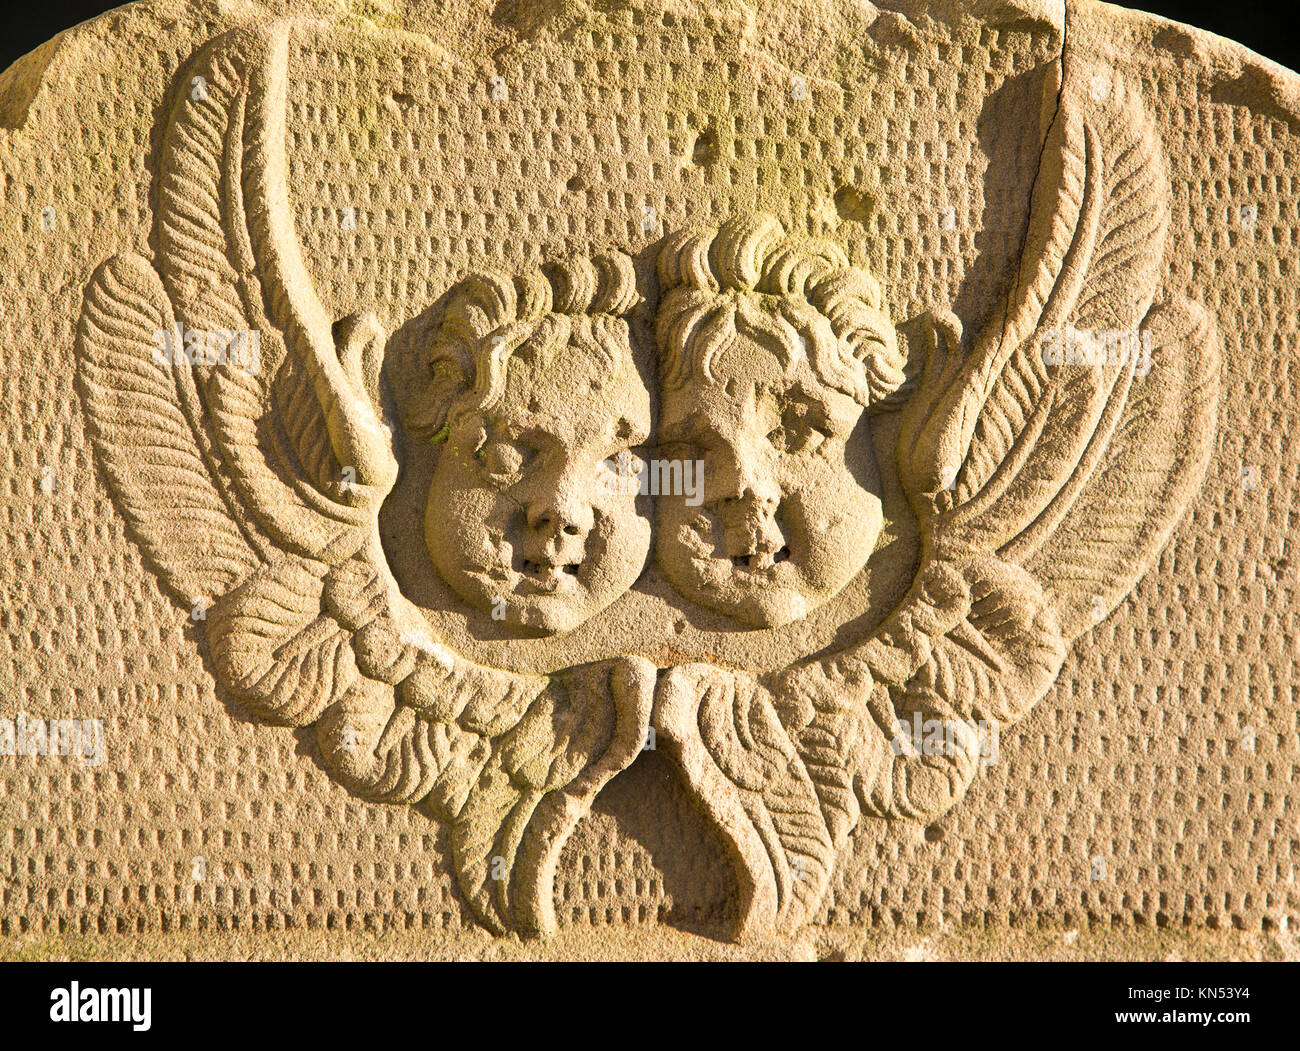 Two angel faces and wings on stone gravestone in church graveyard, Suffolk, England, UK - Stock Image